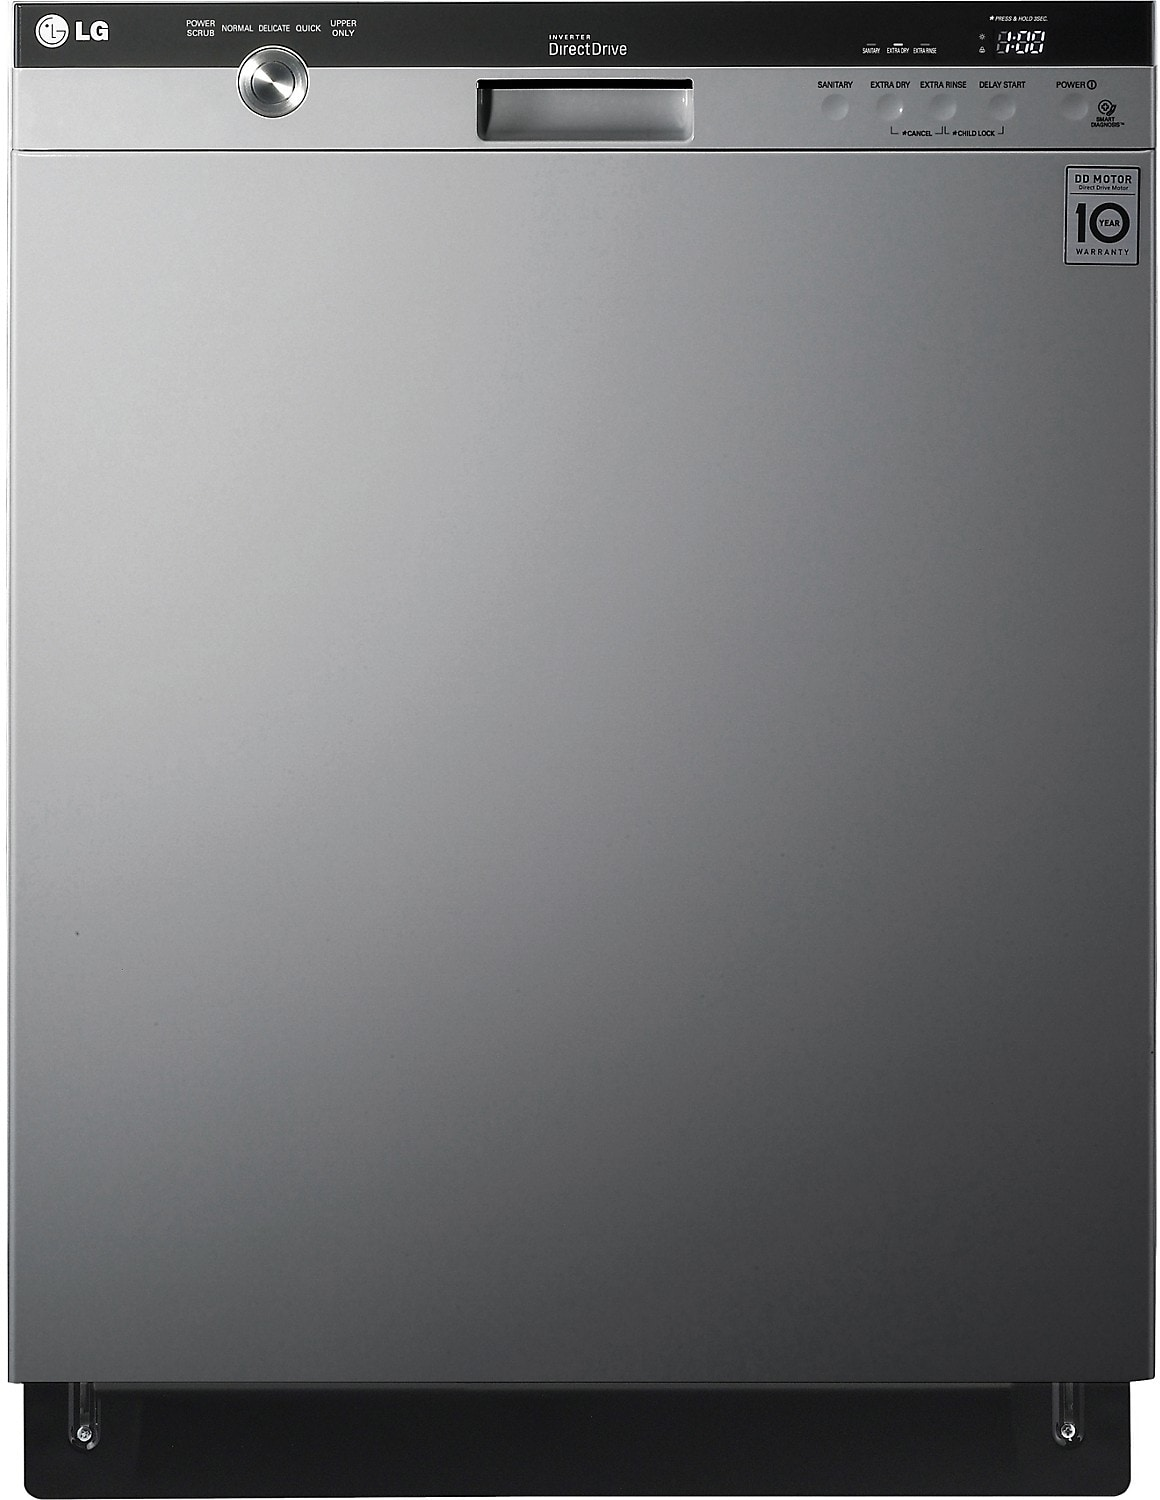 "LG 24"" Semi-Integrated Dishwasher with EasyRack™ Plus System - Stainless Steel"